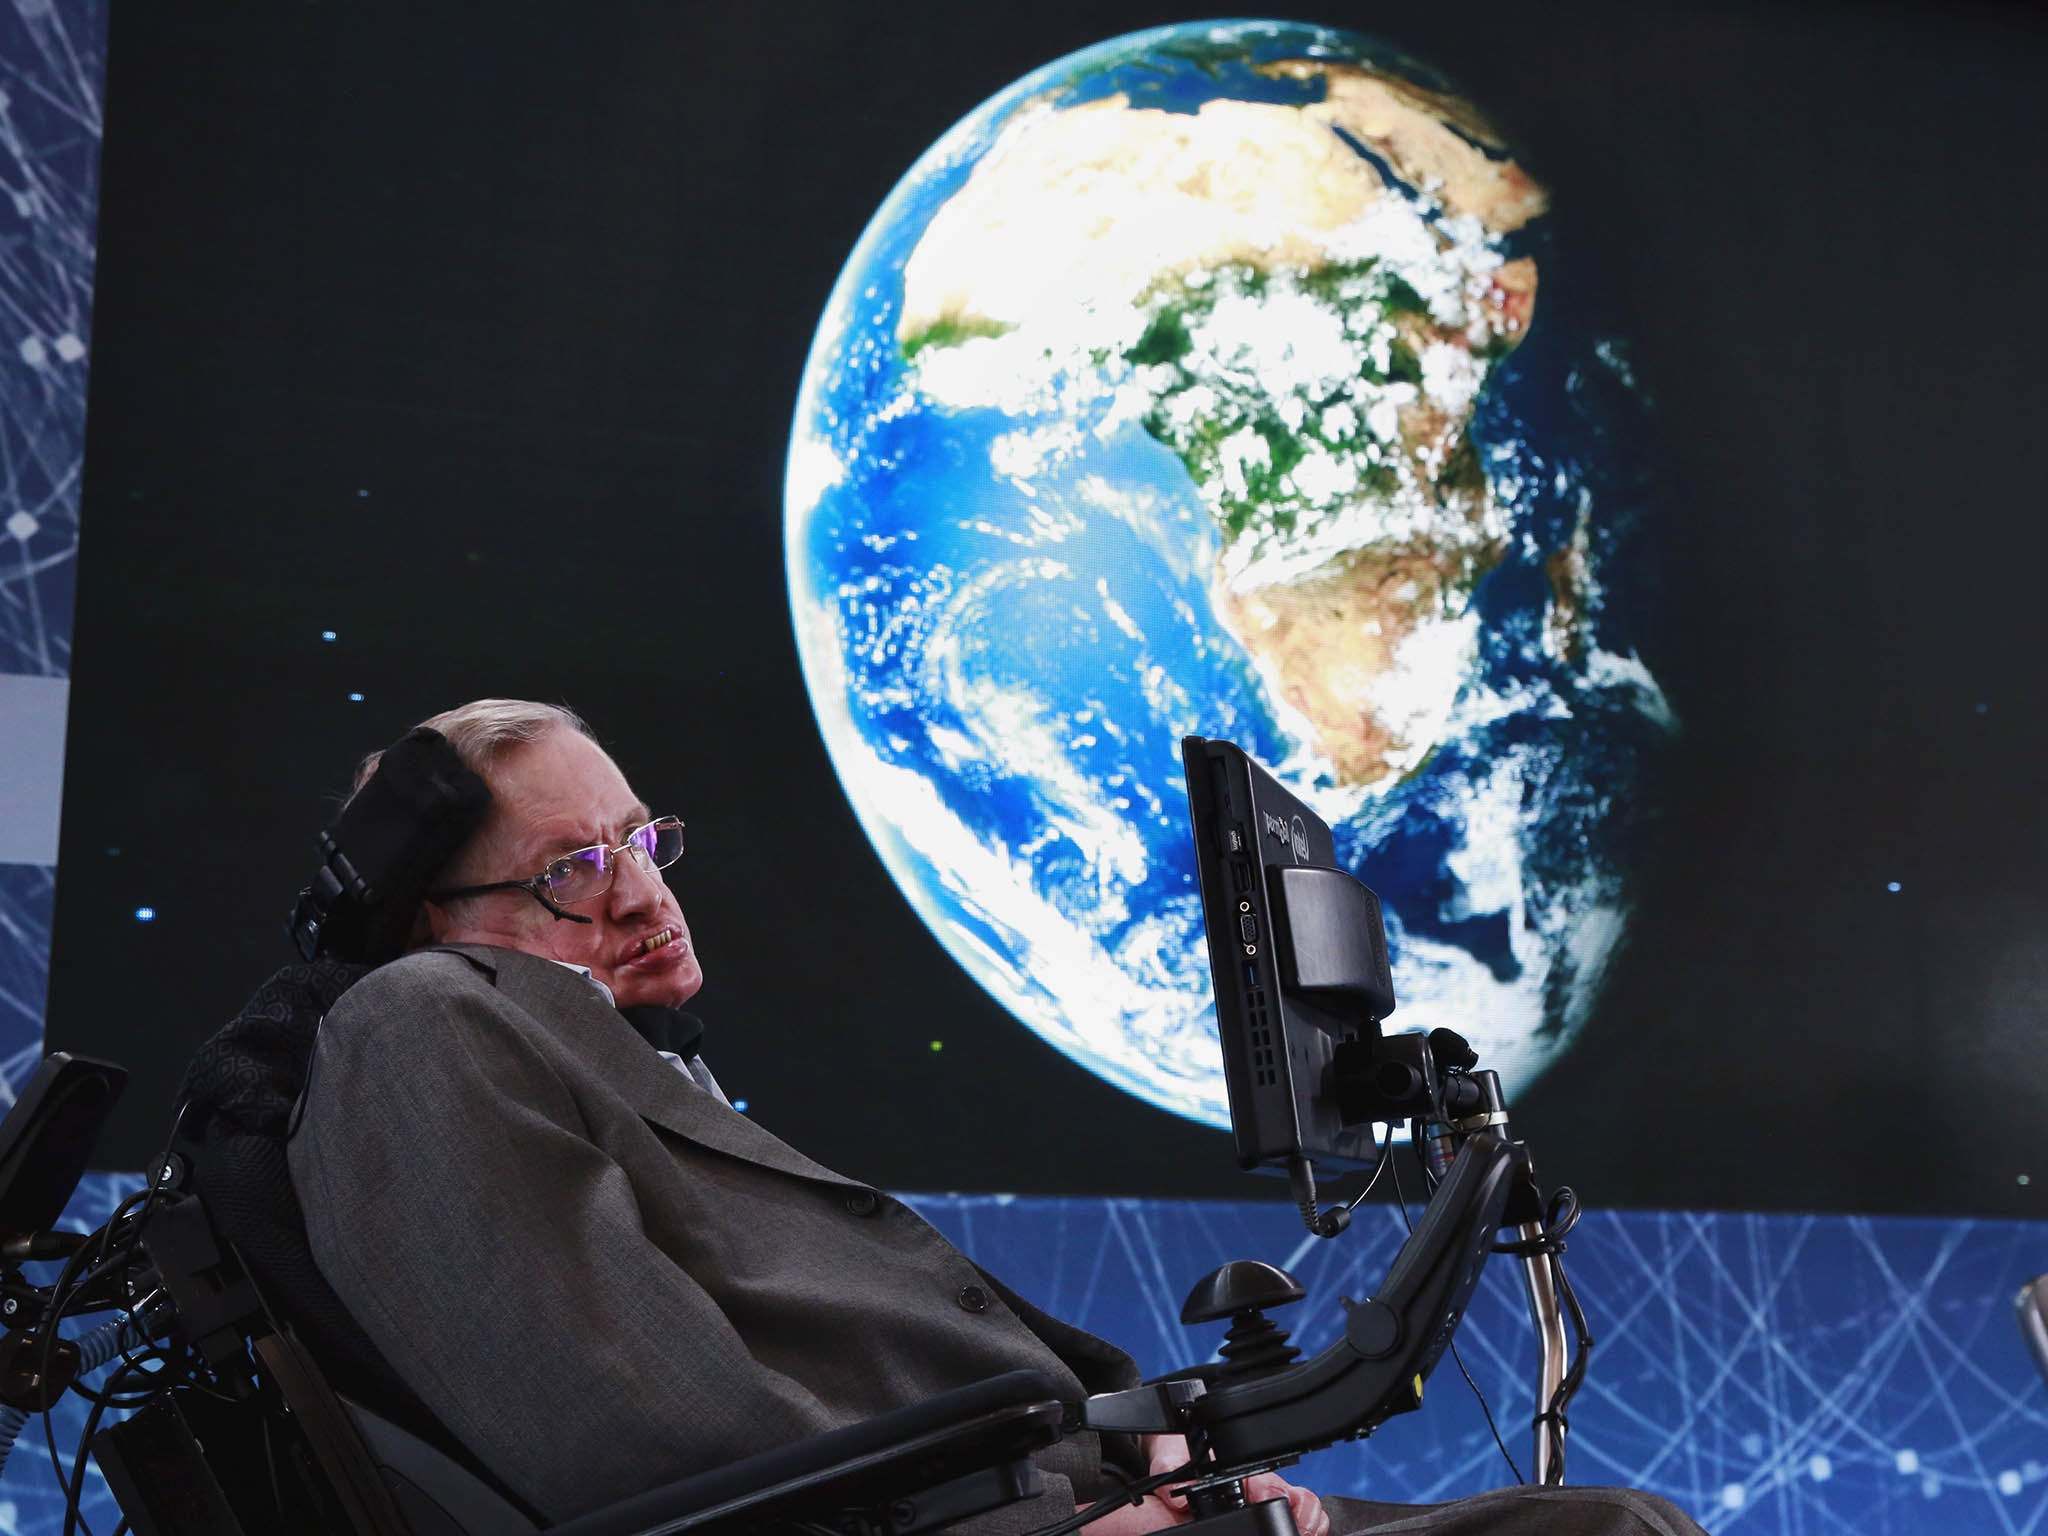 Bristish Cosmologist Stephen Hawking will travel to space on board Richard Branson's ship: 'I thought no one would take me', the cosmologist and physicist said